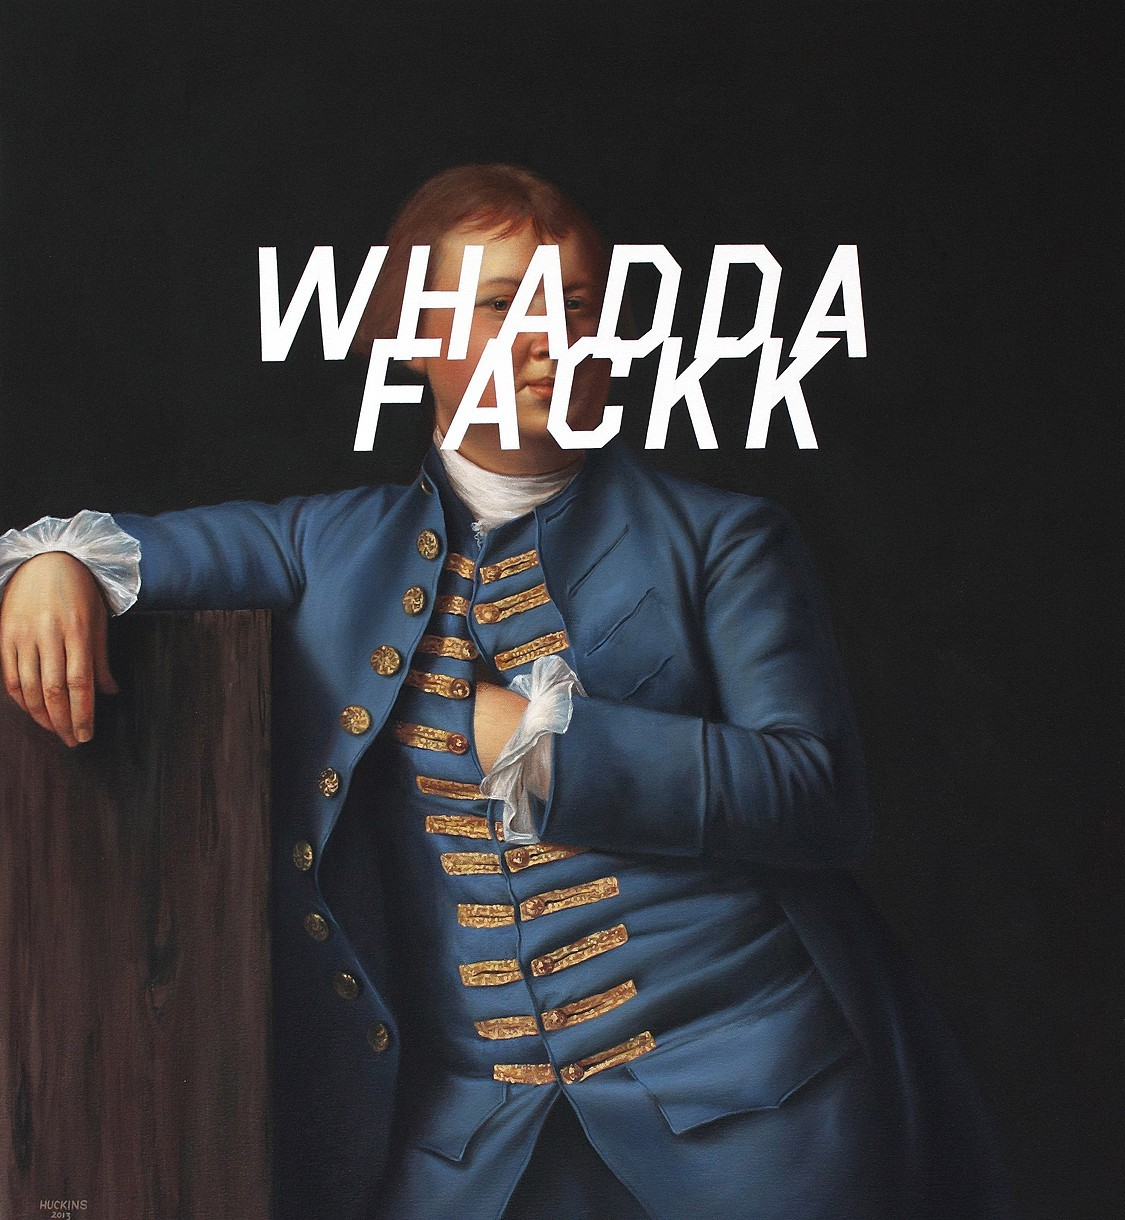 'Lemuel Cox. What The Fuck' - Shawn Huckins